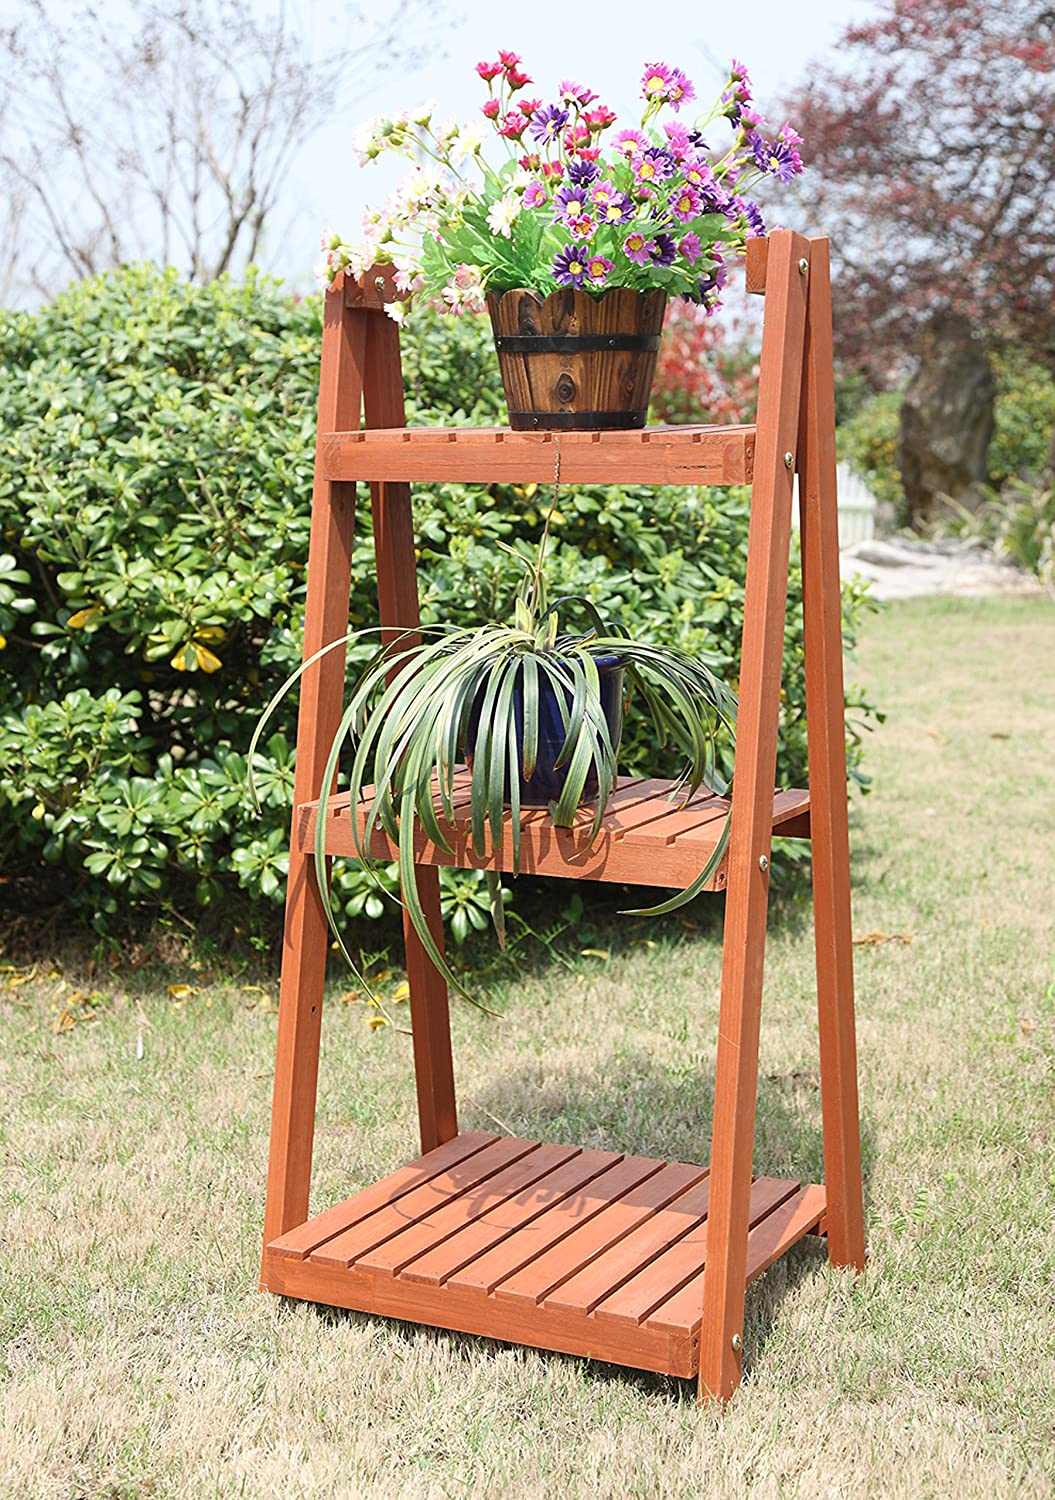 The seasoning products sale tier plant stand decorating